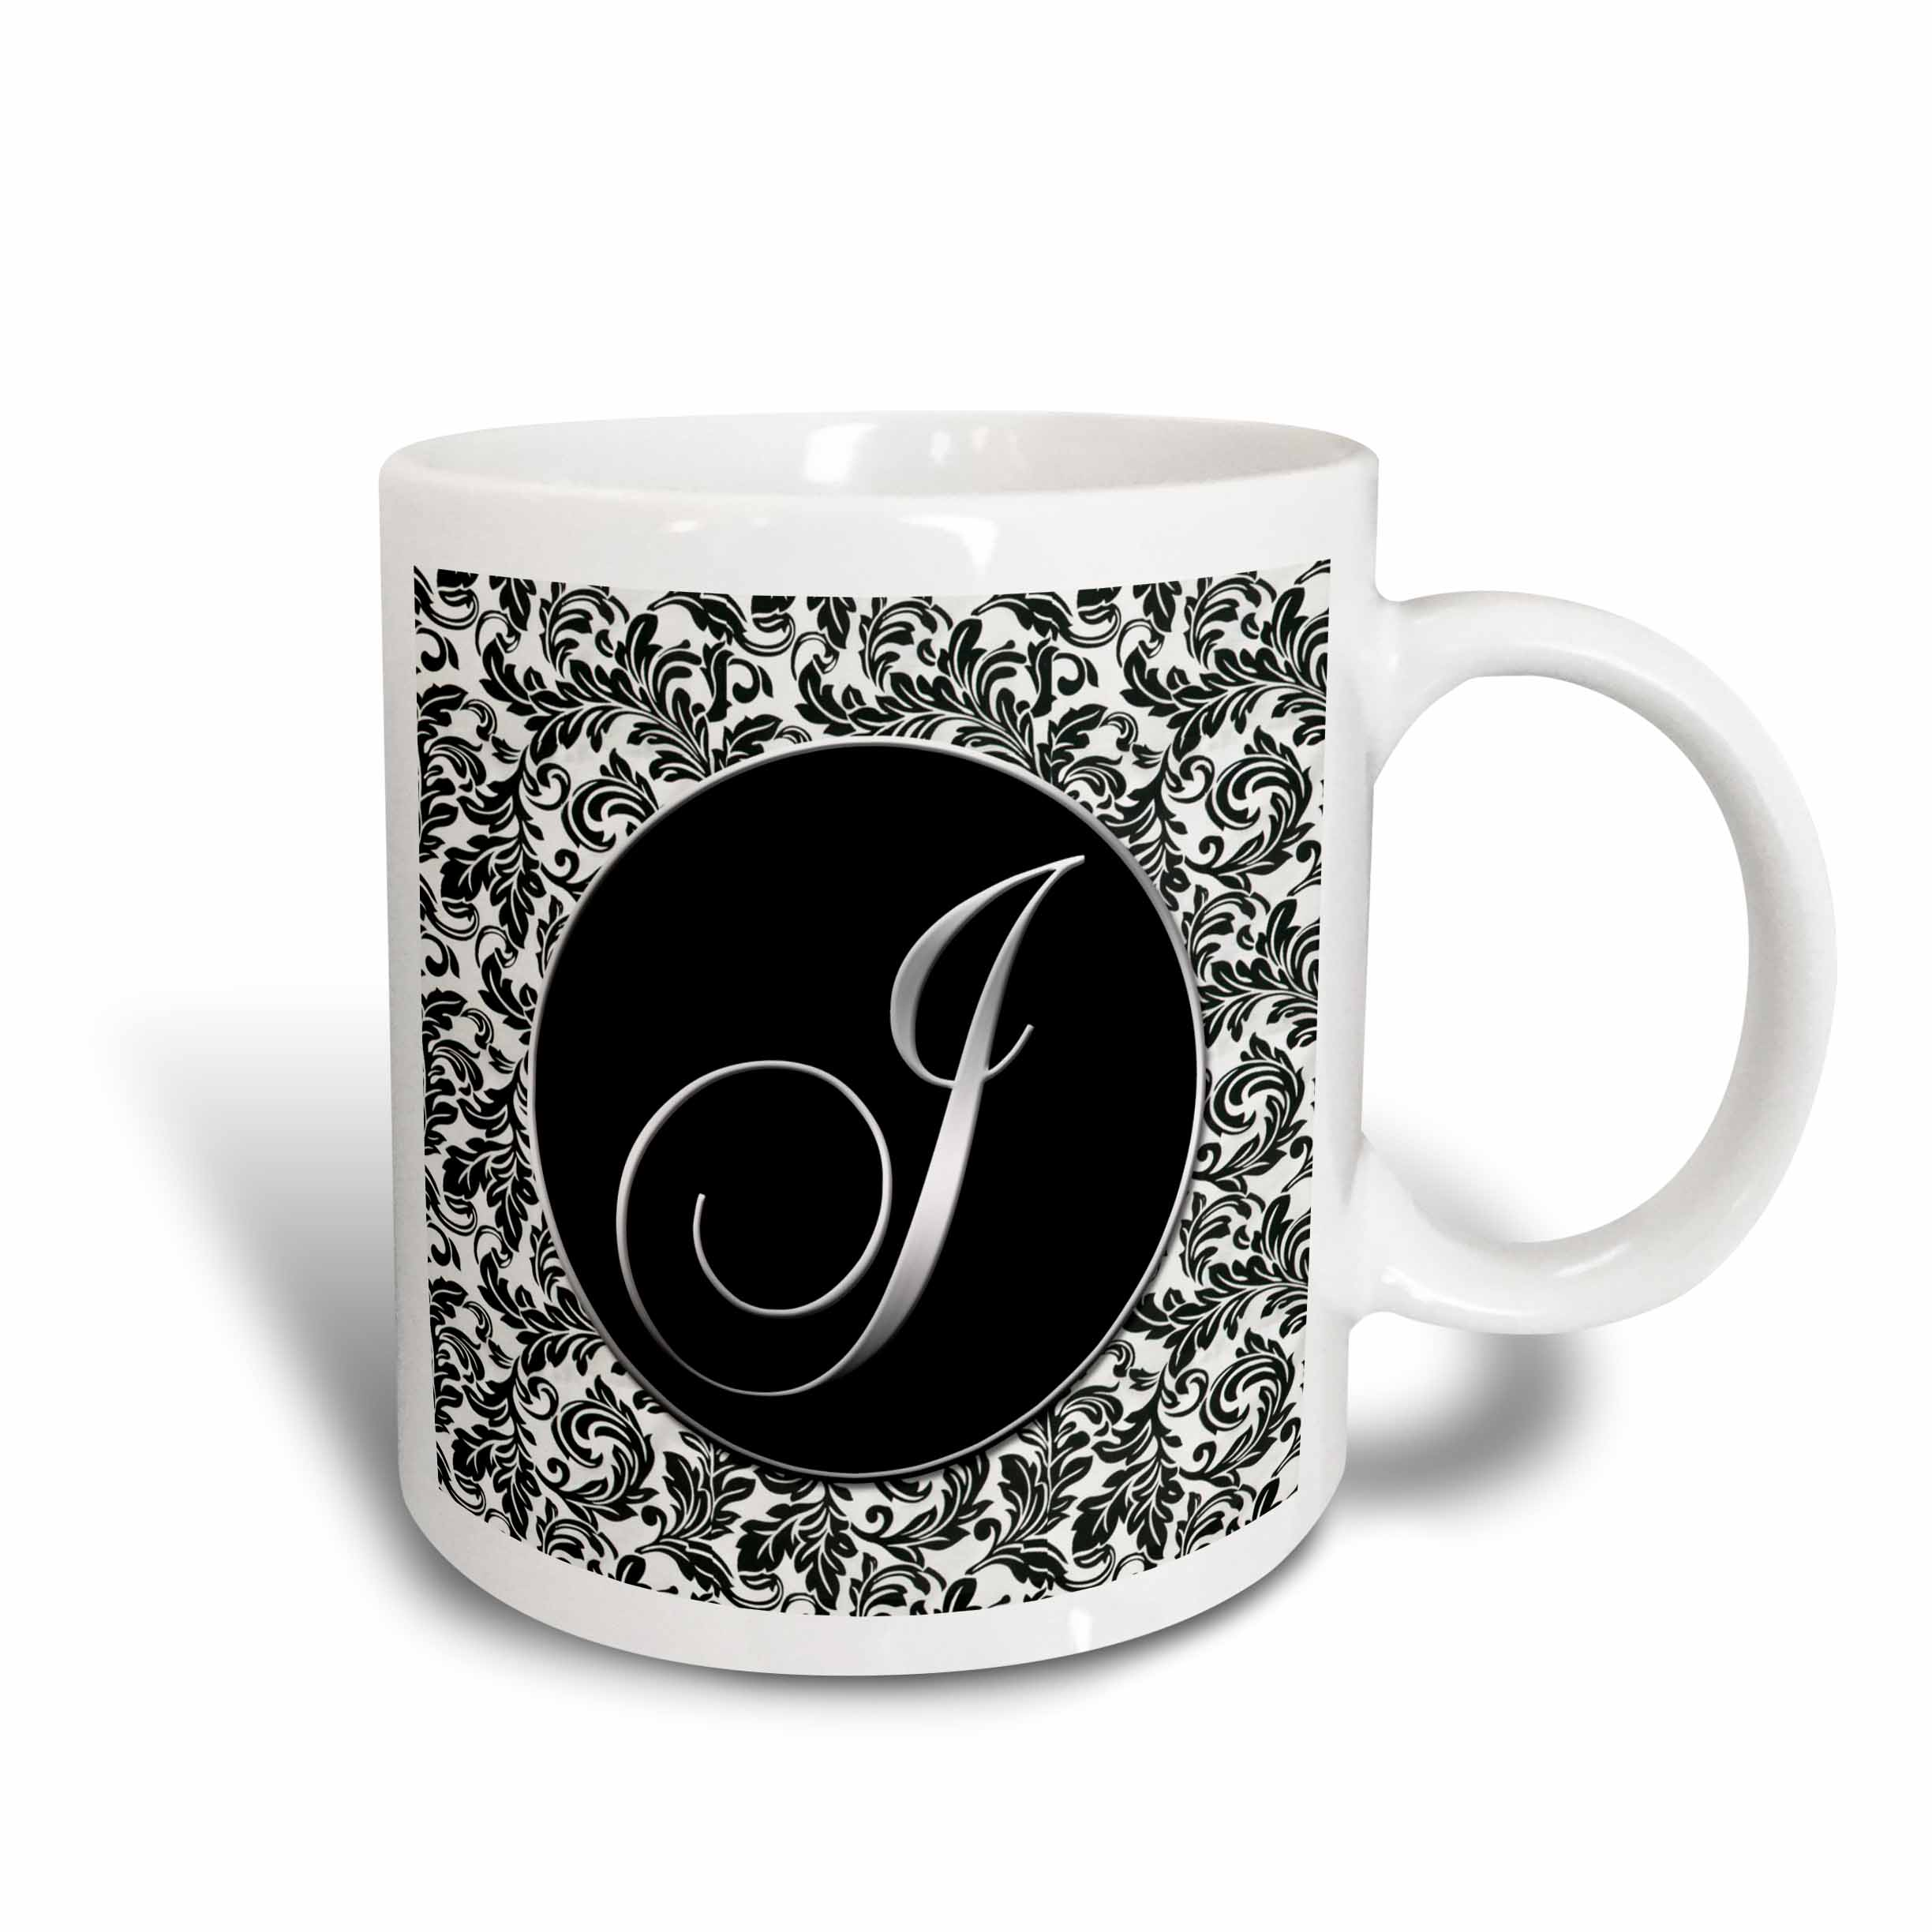 3dRose Letter J - Black and White Damask, Ceramic Mug, 11-ounce